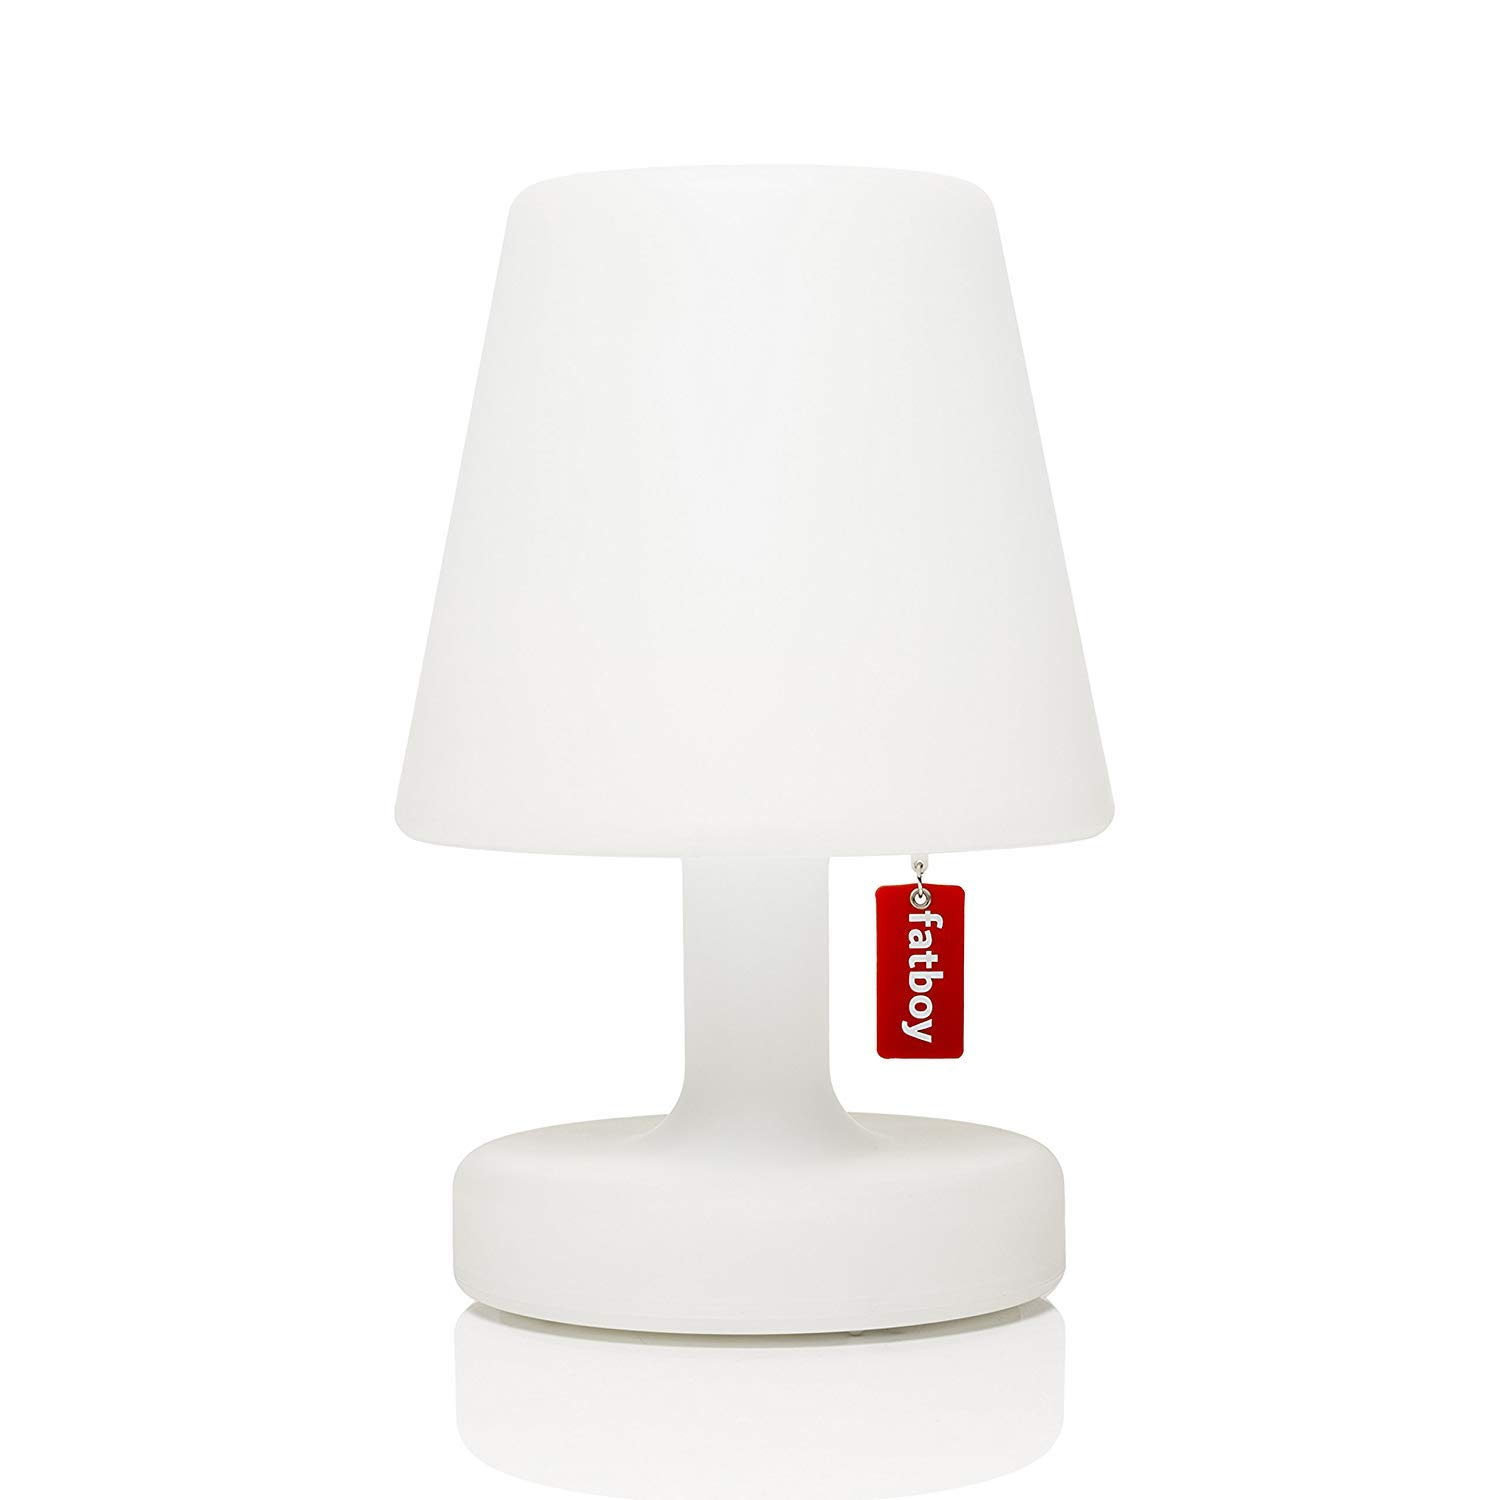 Fatboy Edison the Petit Lamp Rechargeable Portable LED light by Fatboy